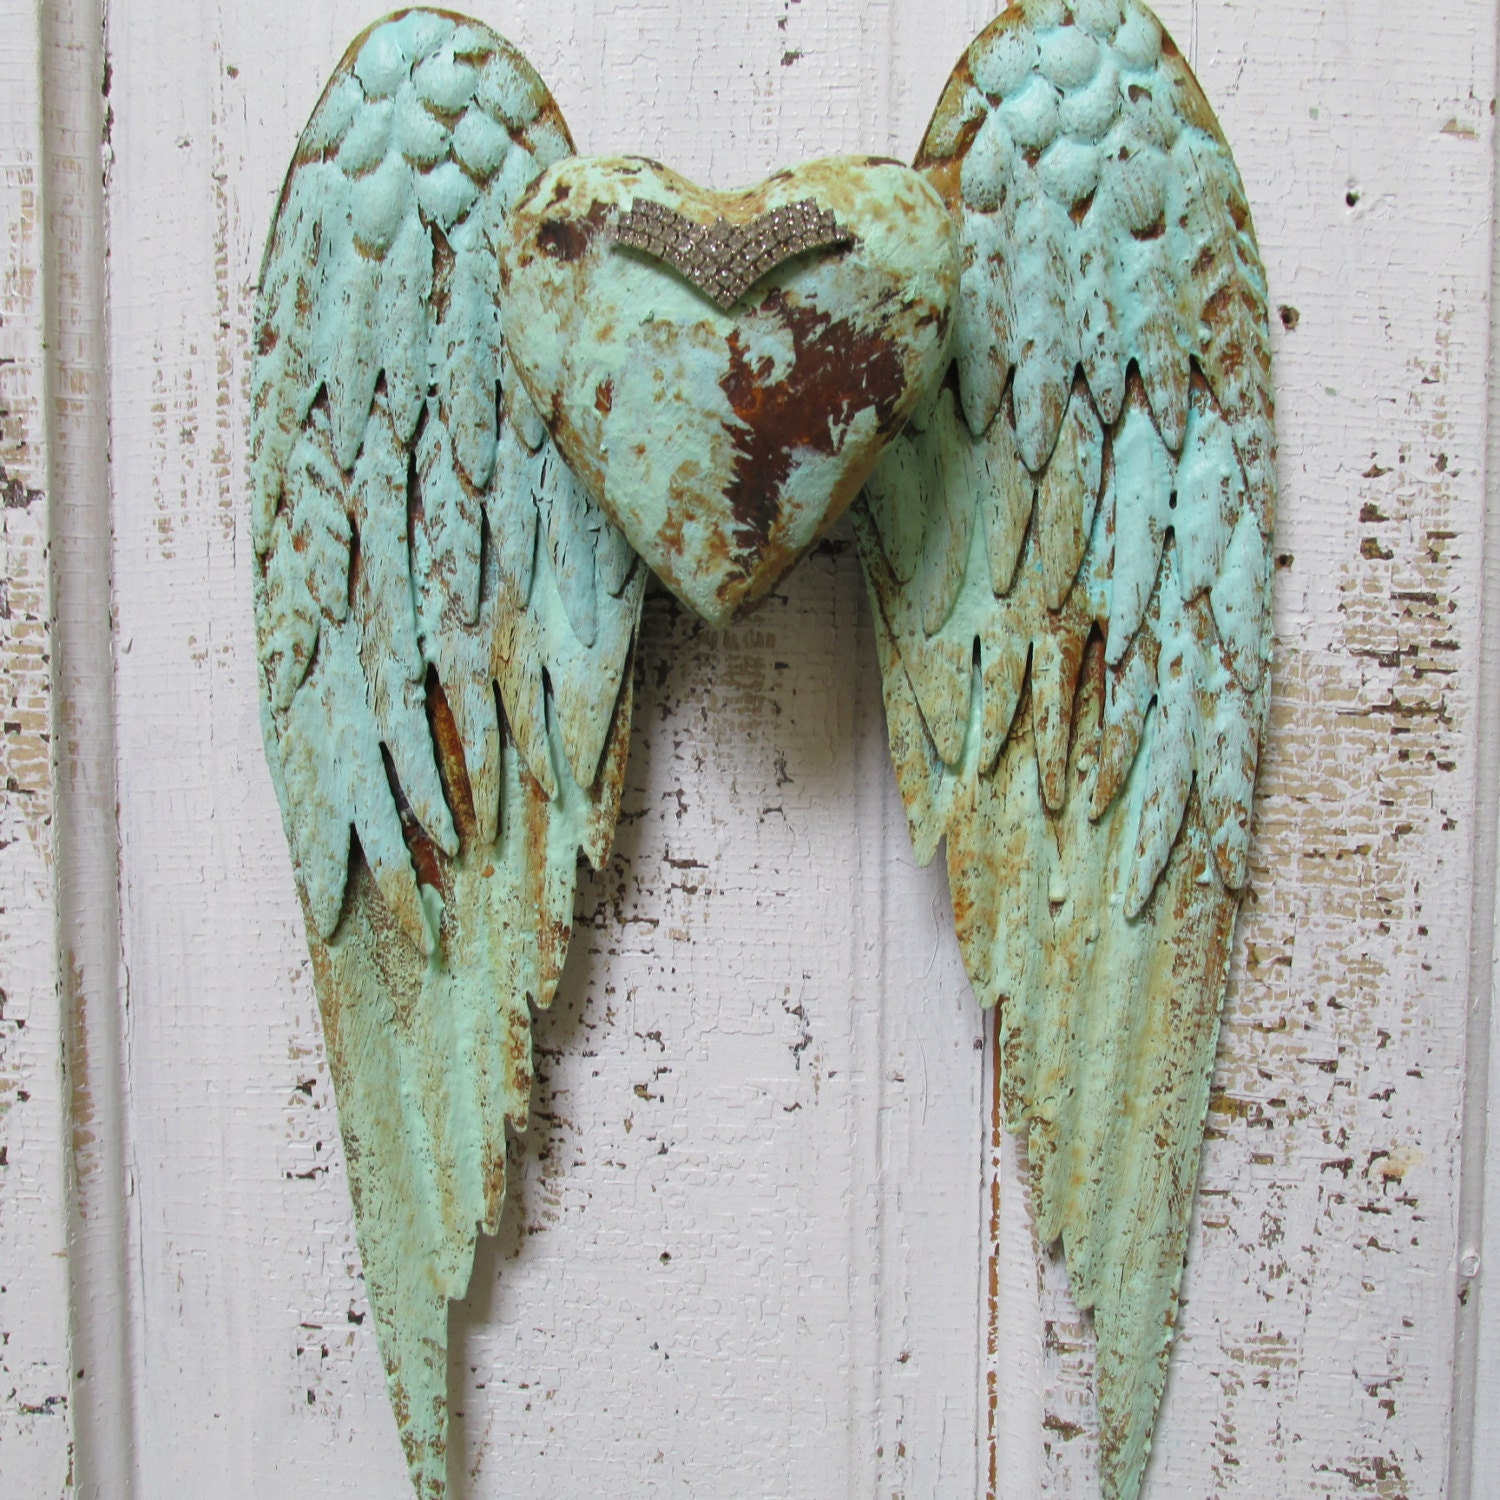 Decorative Wall Hanging Angel Wings : Angel wings wall decor with heart shabby chic by